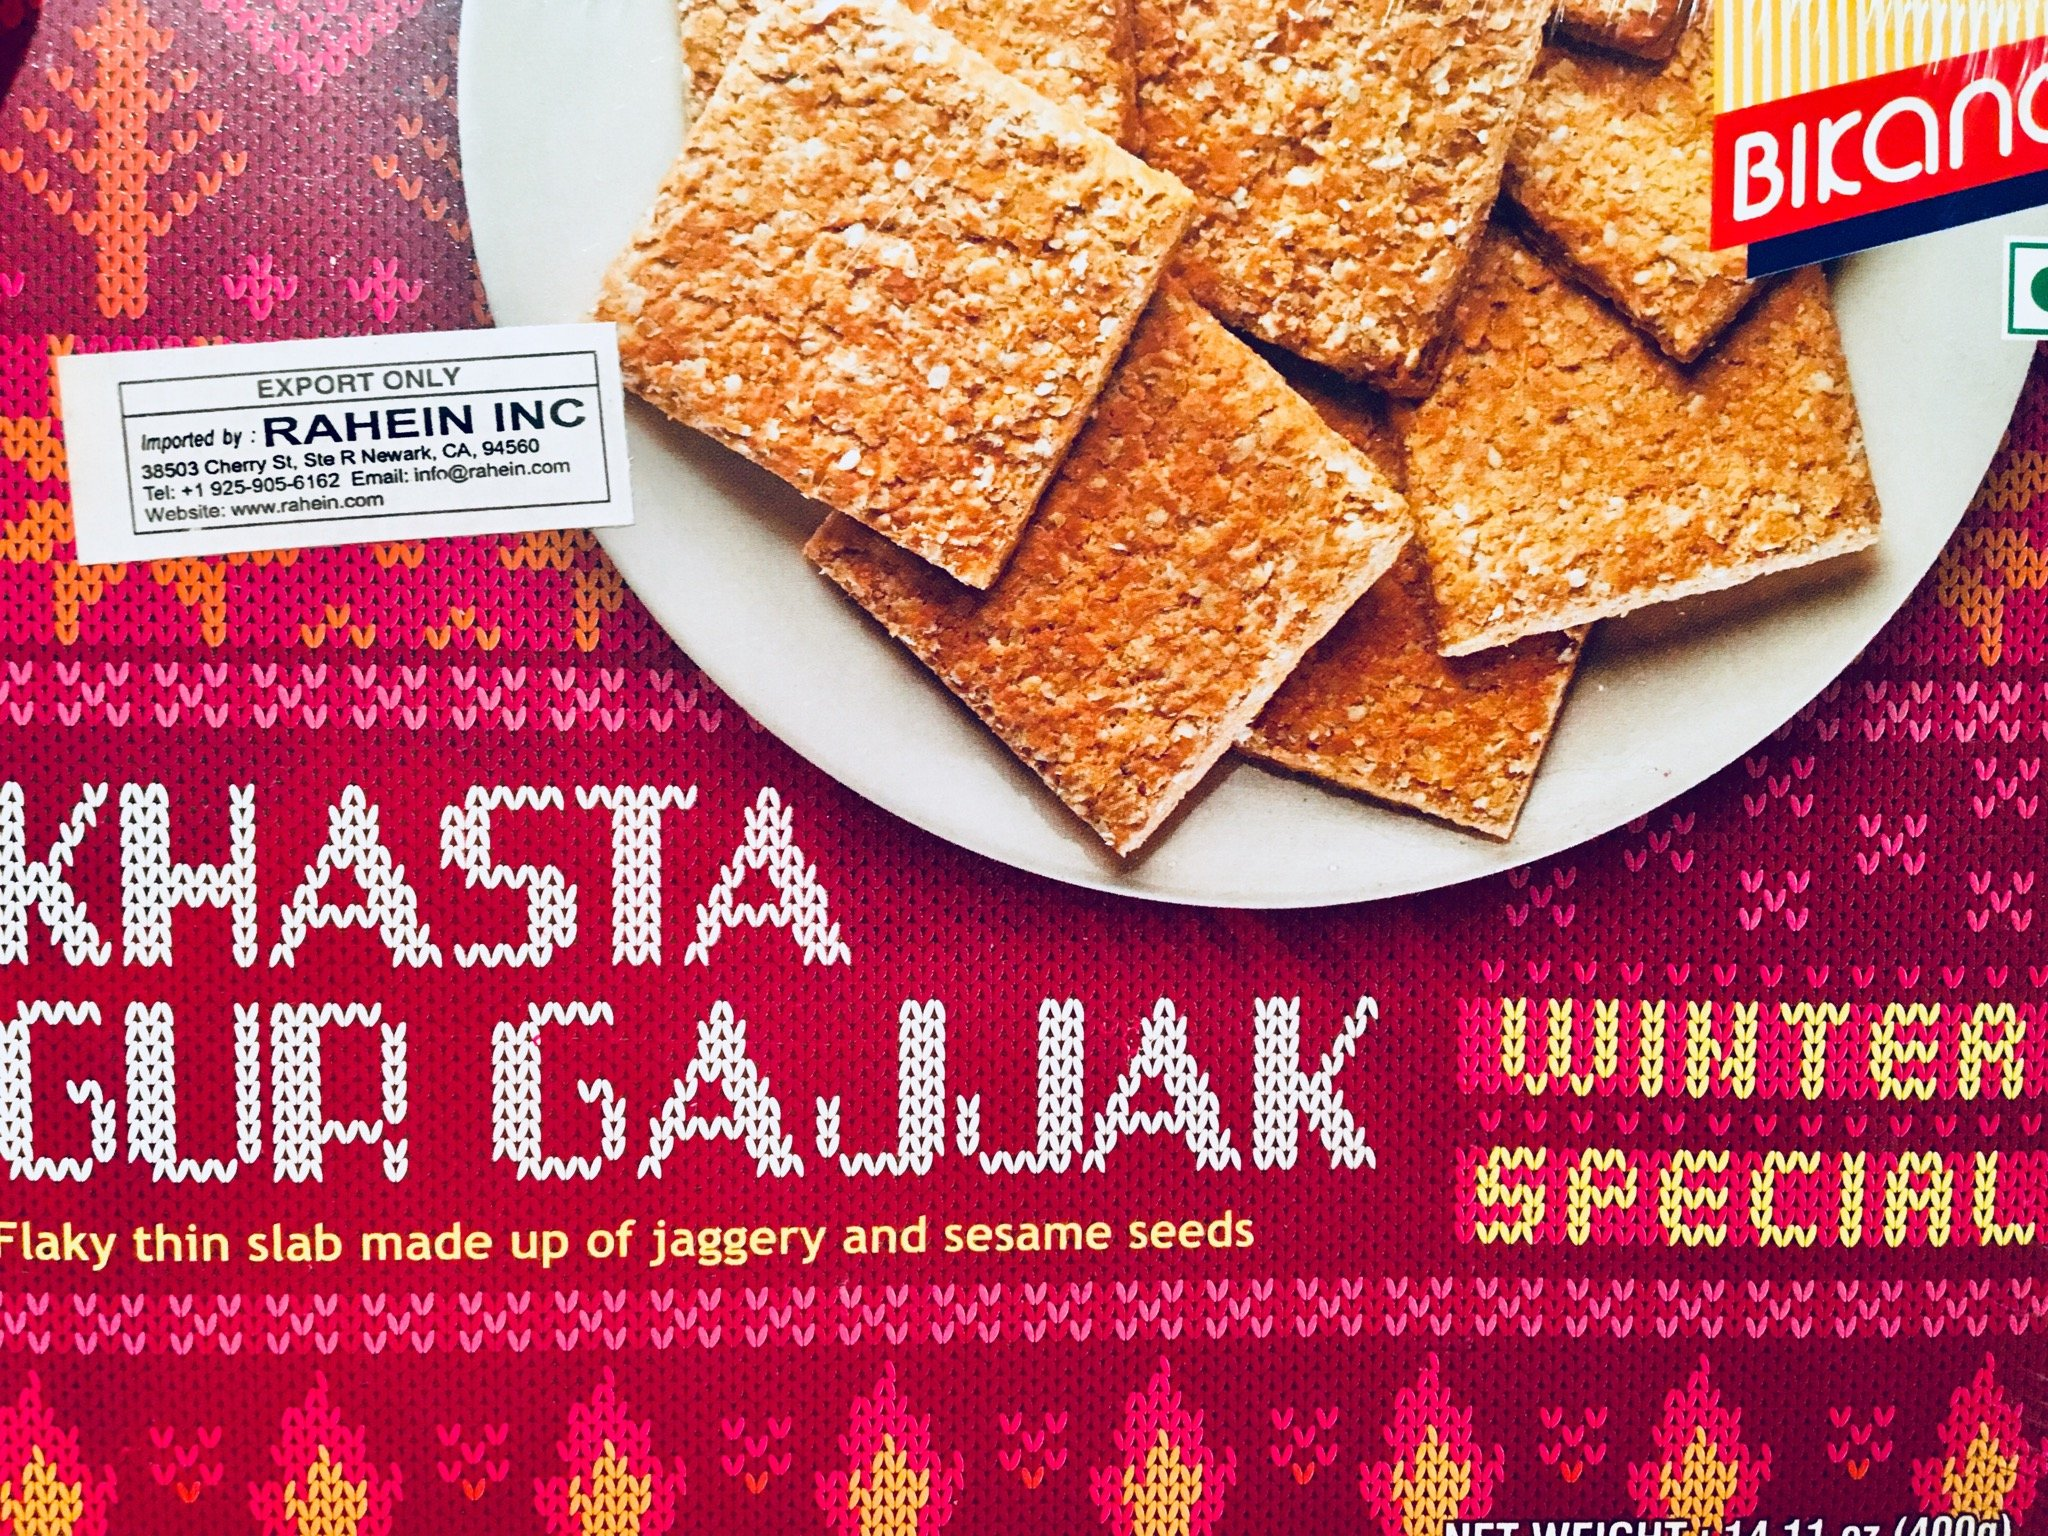 Bikano Khasta Gur Gajak Winter Special 2 Pack Indian Ready to eat Sweets -14.11 Oz by Bikano